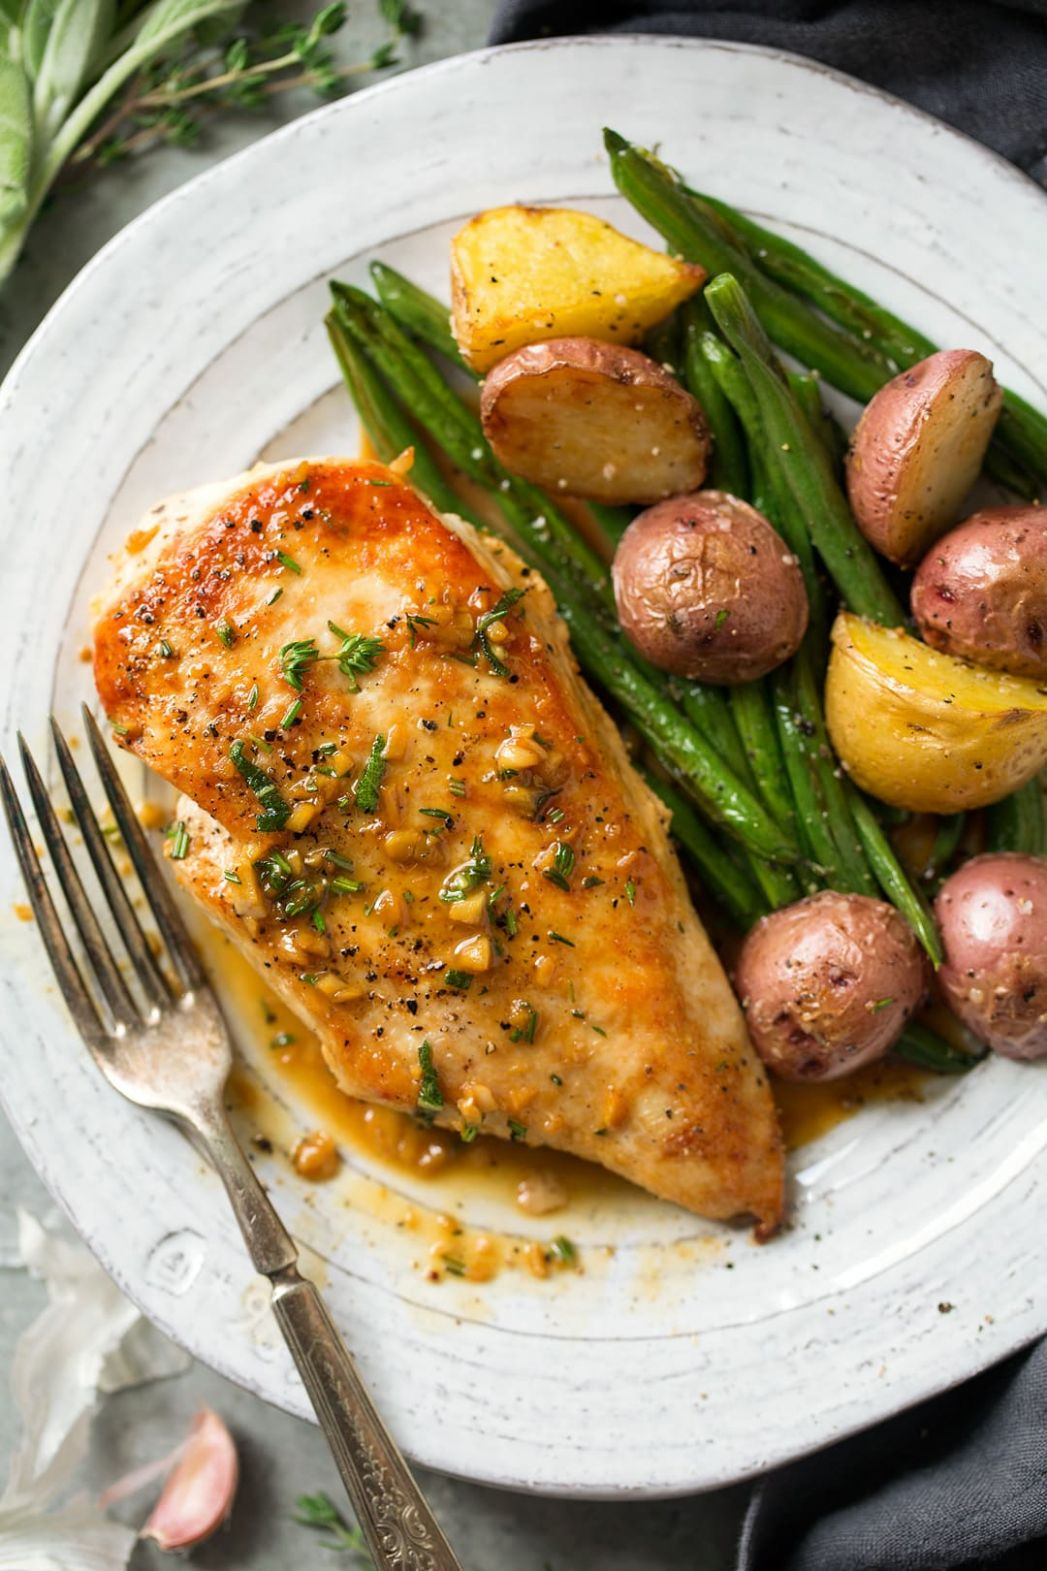 Skillet Chicken with Garlic Herb Butter Sauce - Recipes Chicken Breast Stovetop